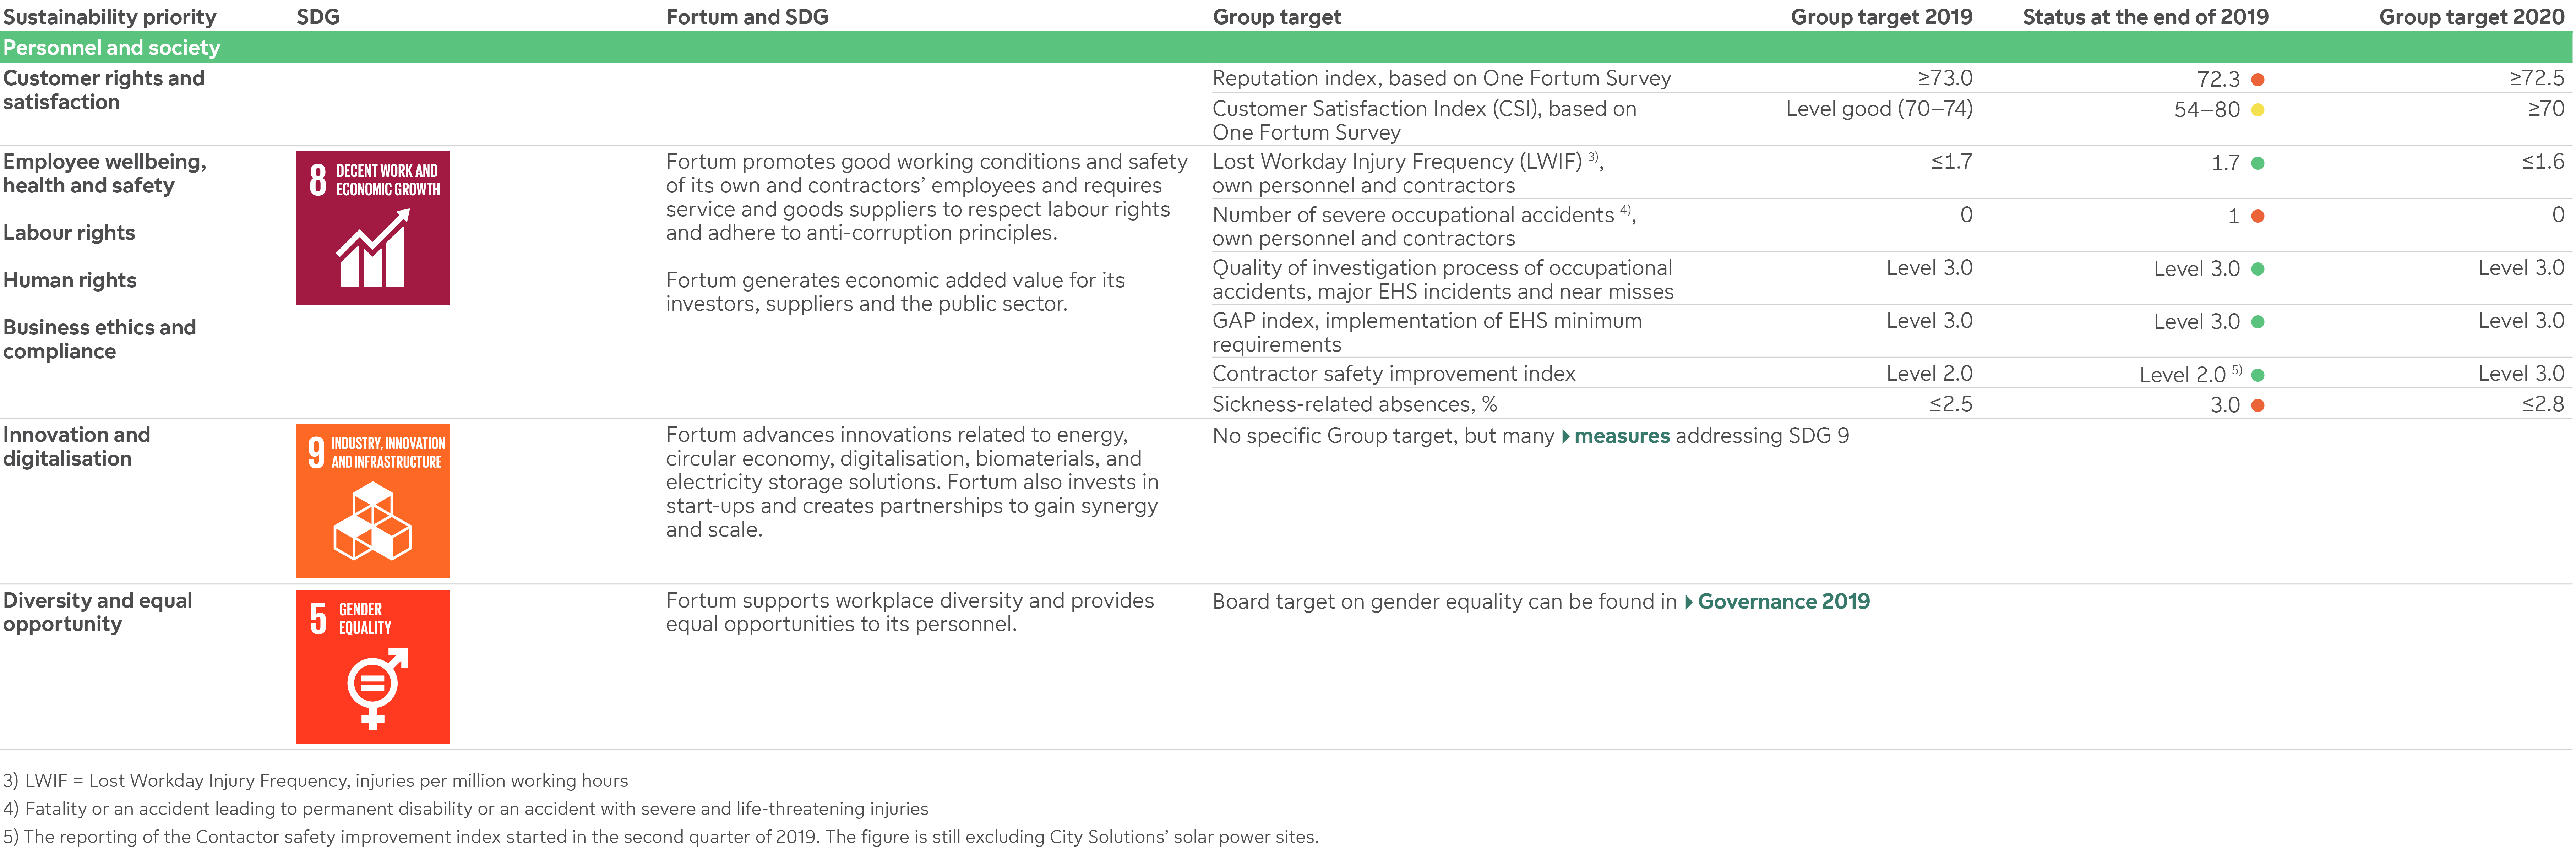 Group sustainability priorities, SDGs, Group targets and performance in 2019